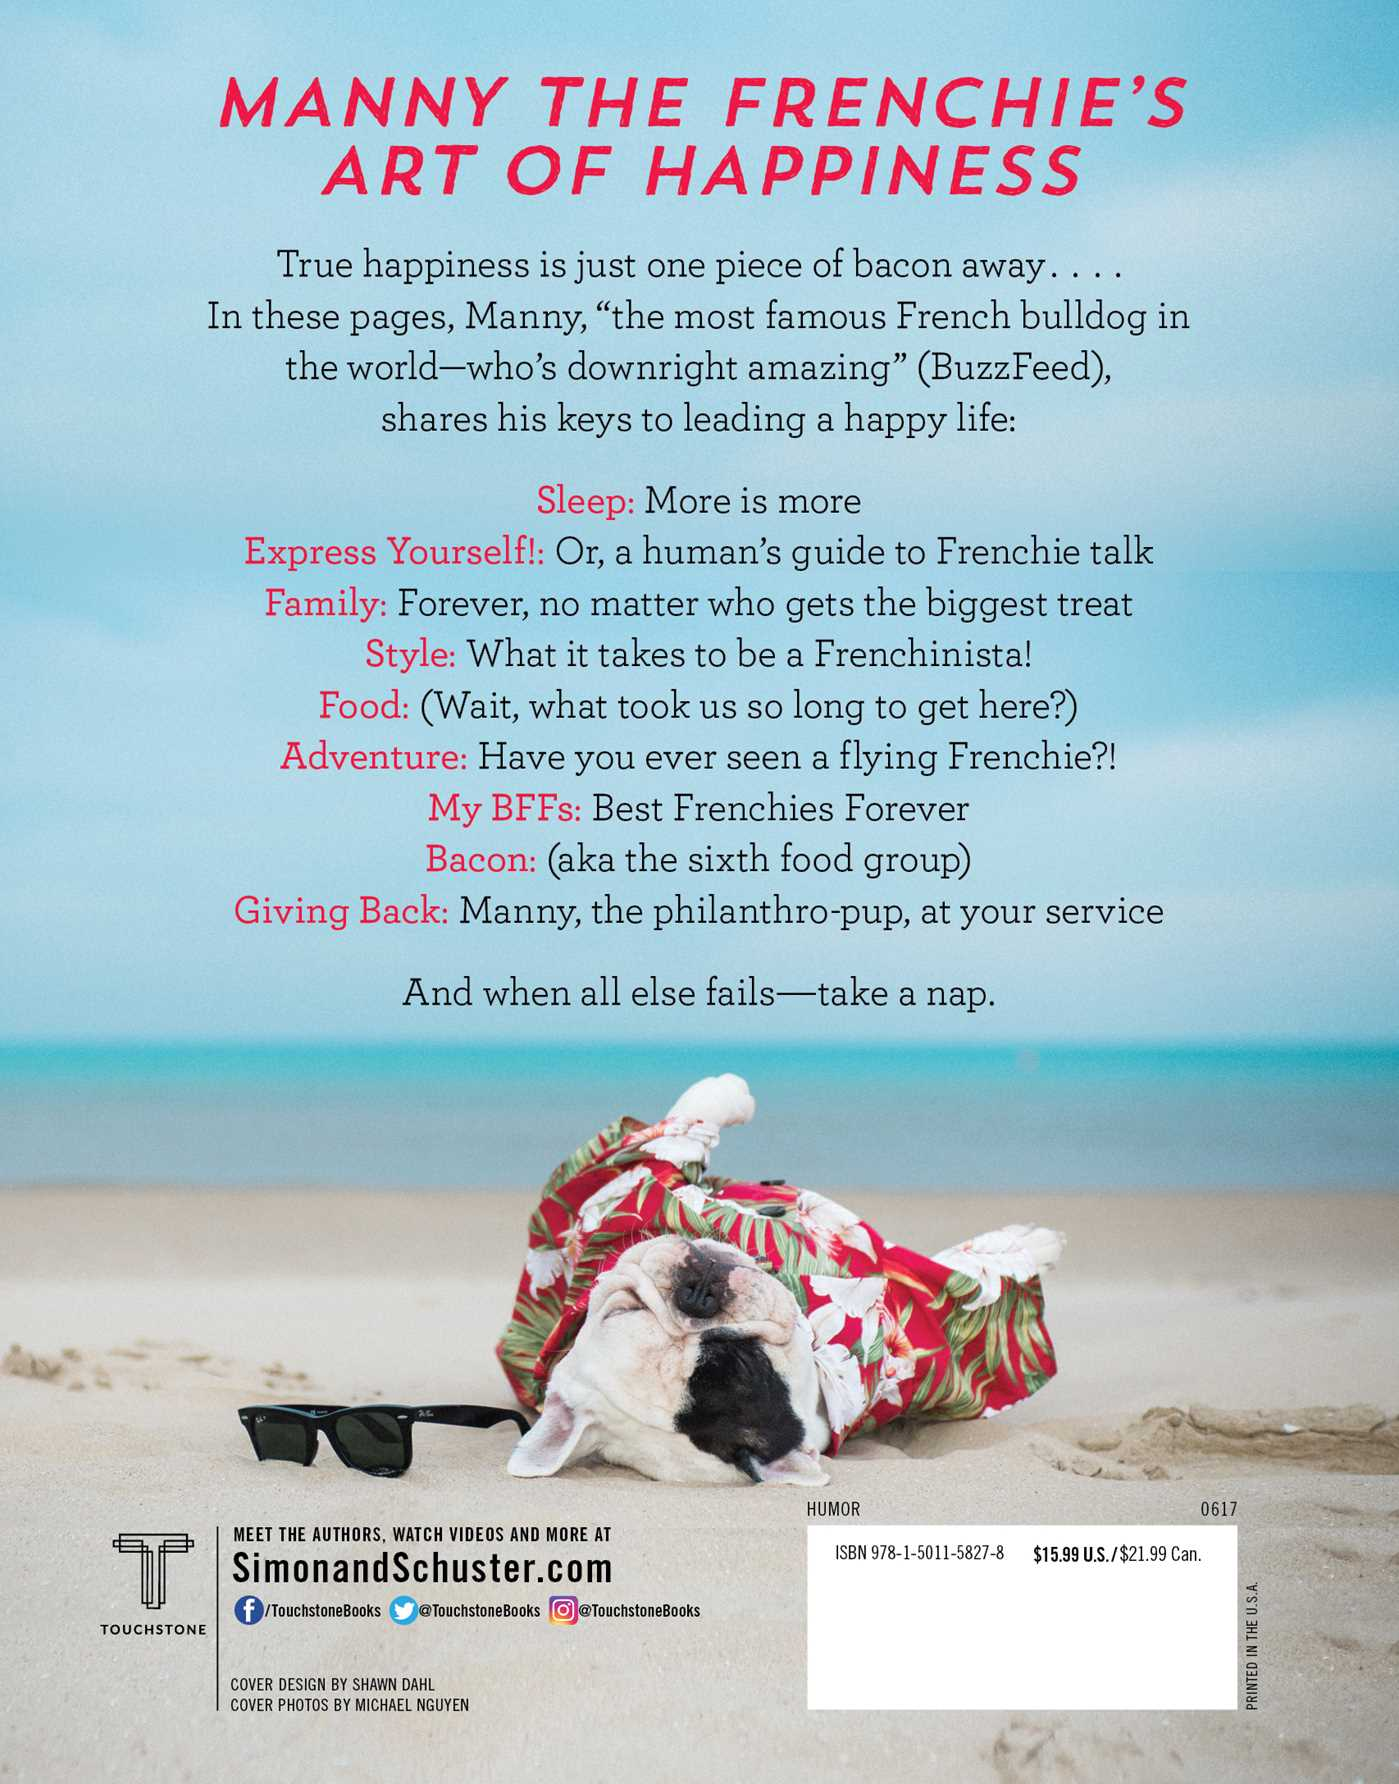 Manny the frenchies art of happiness 9781501158278 hr back